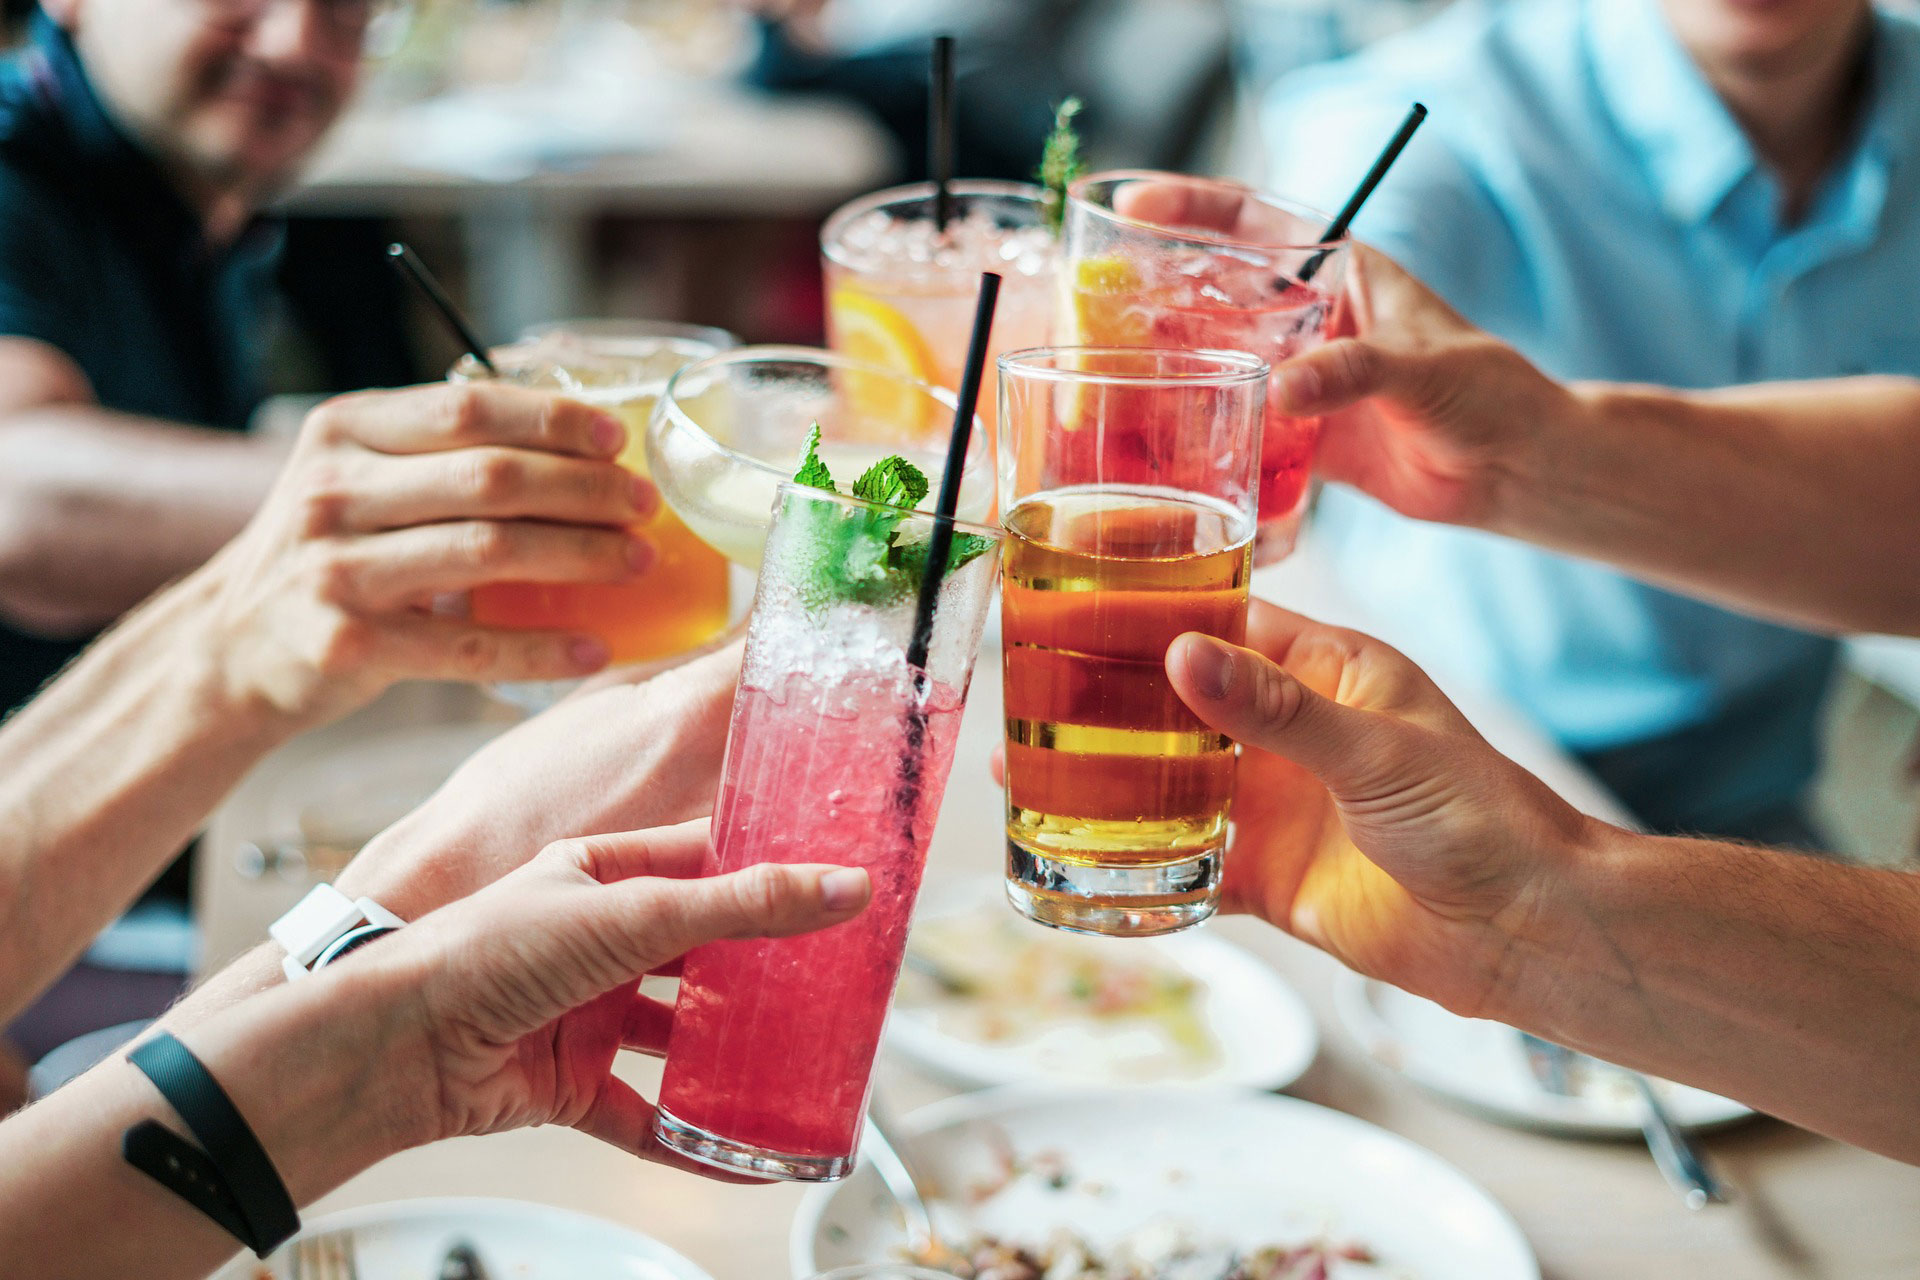 Few Ways to say NO to Alcohol at Social Gatherings